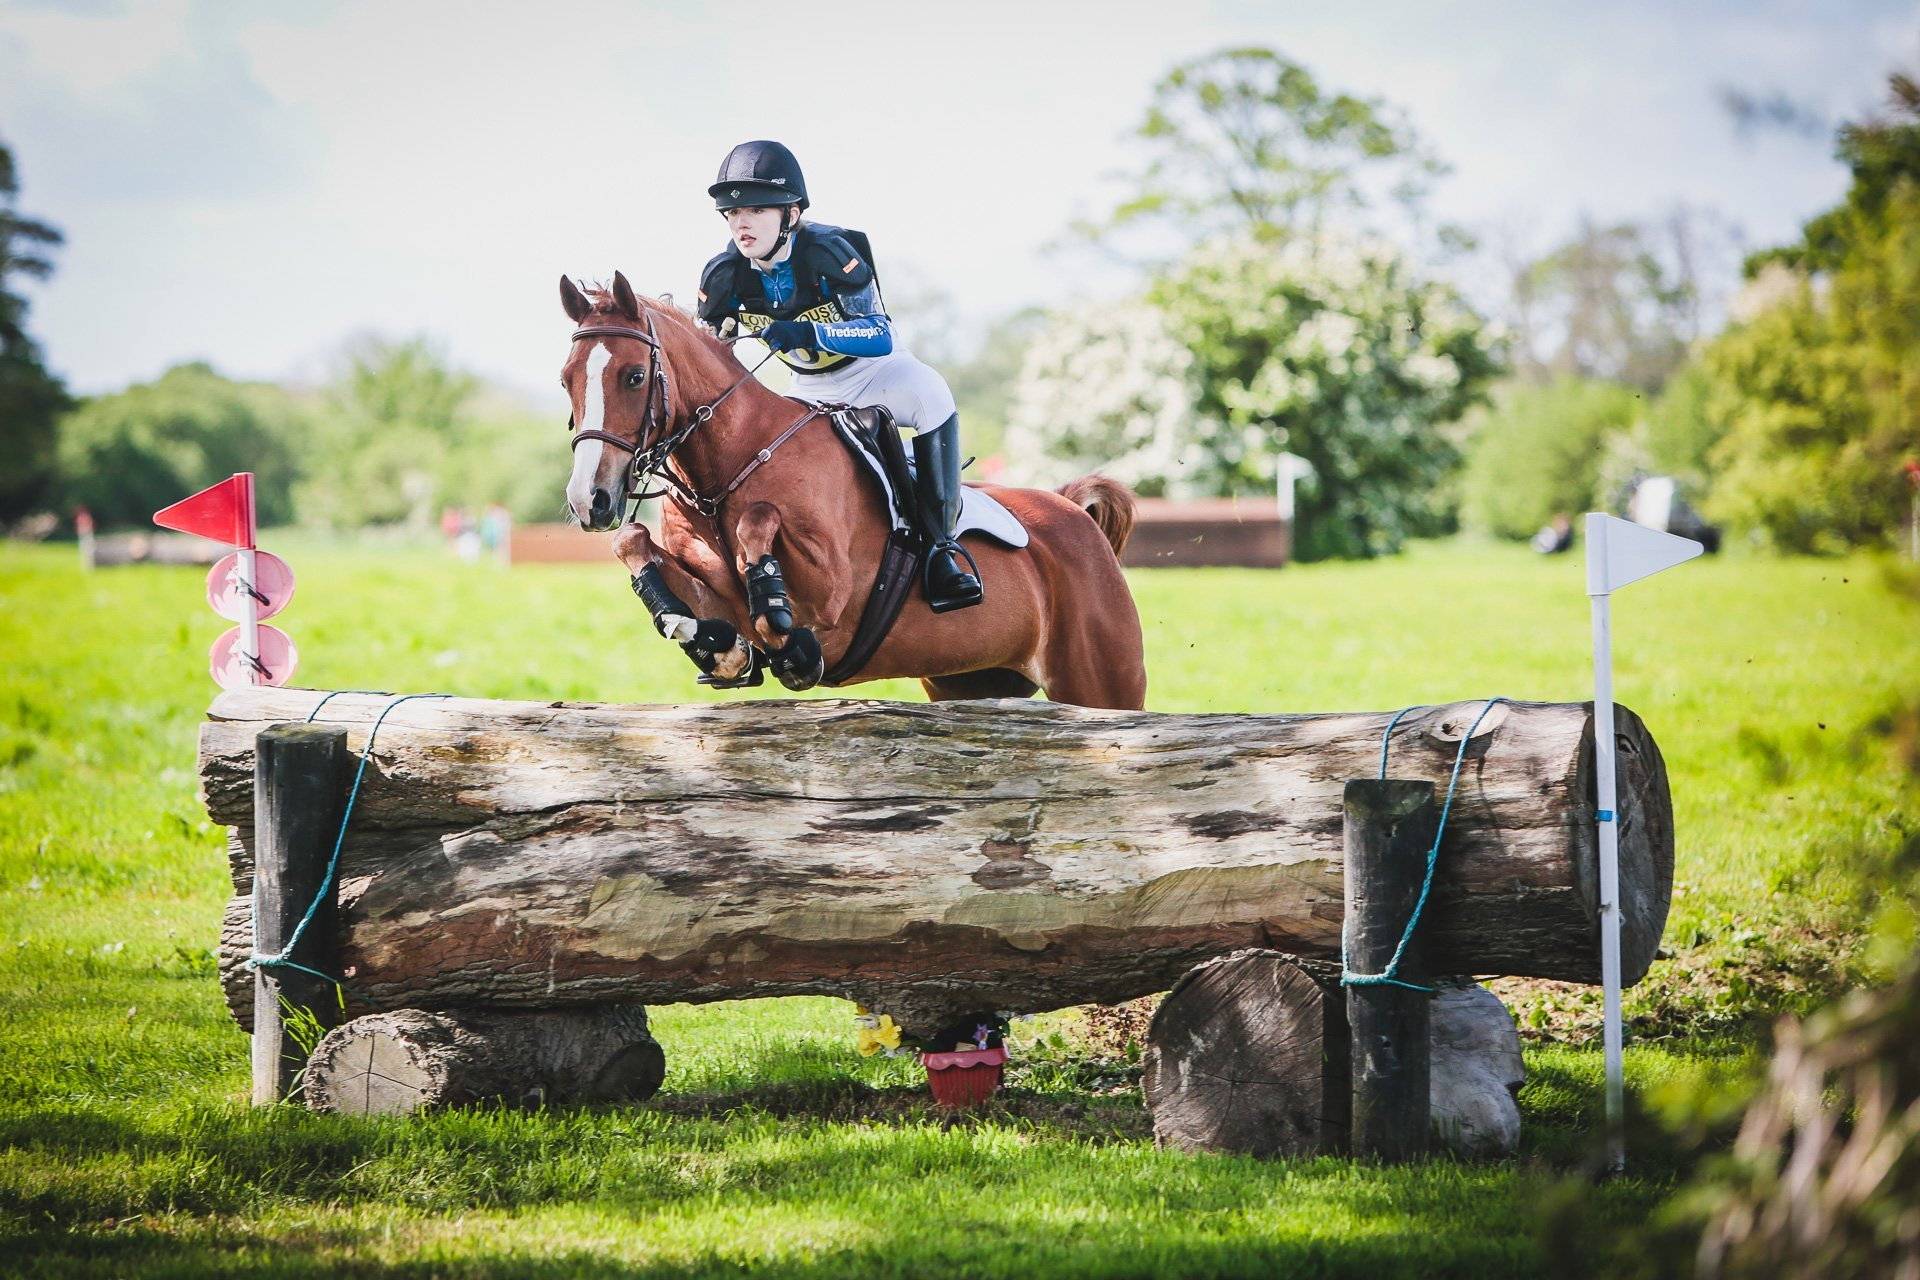 Isabella Shaw and Only Sometimes out on the cross country phase at Llanymynech horse trials